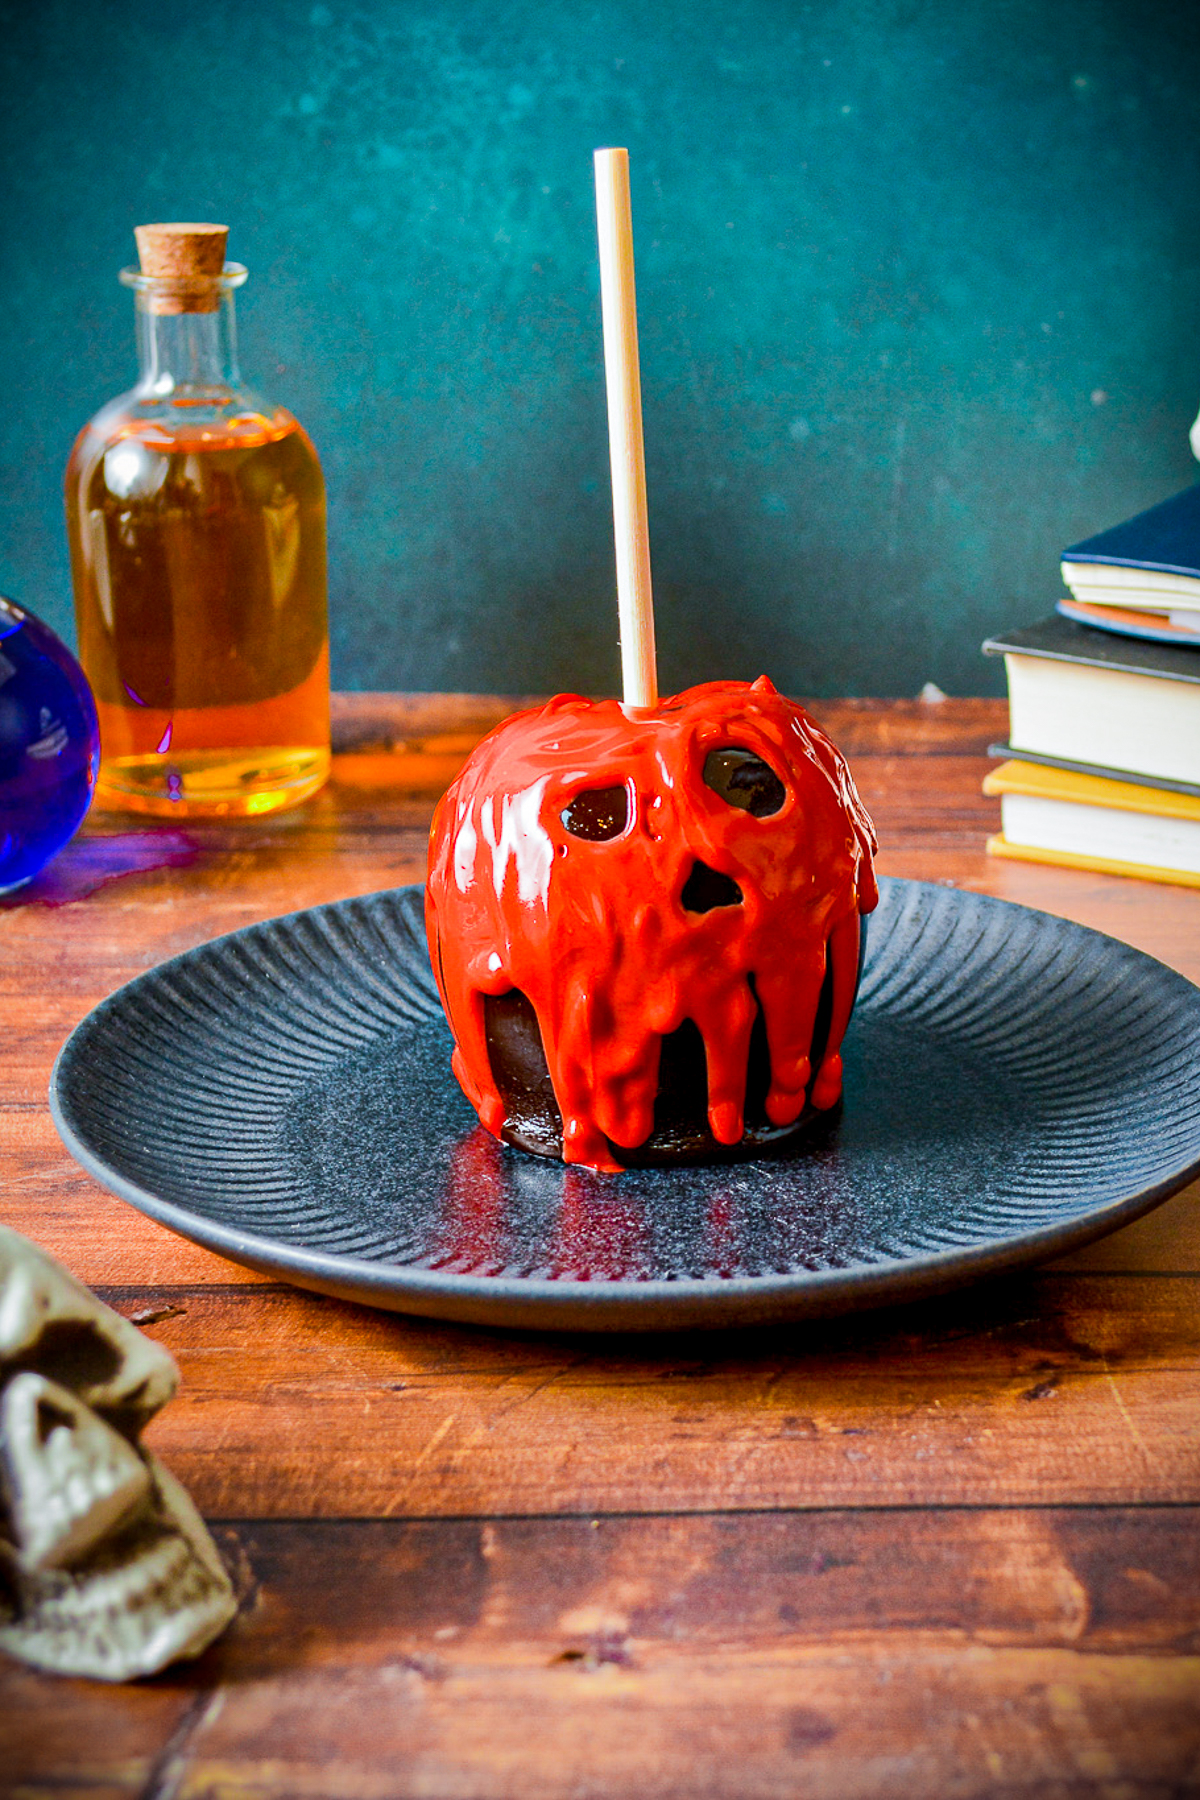 Poison Apple finished on plate with books in back and skull in front.